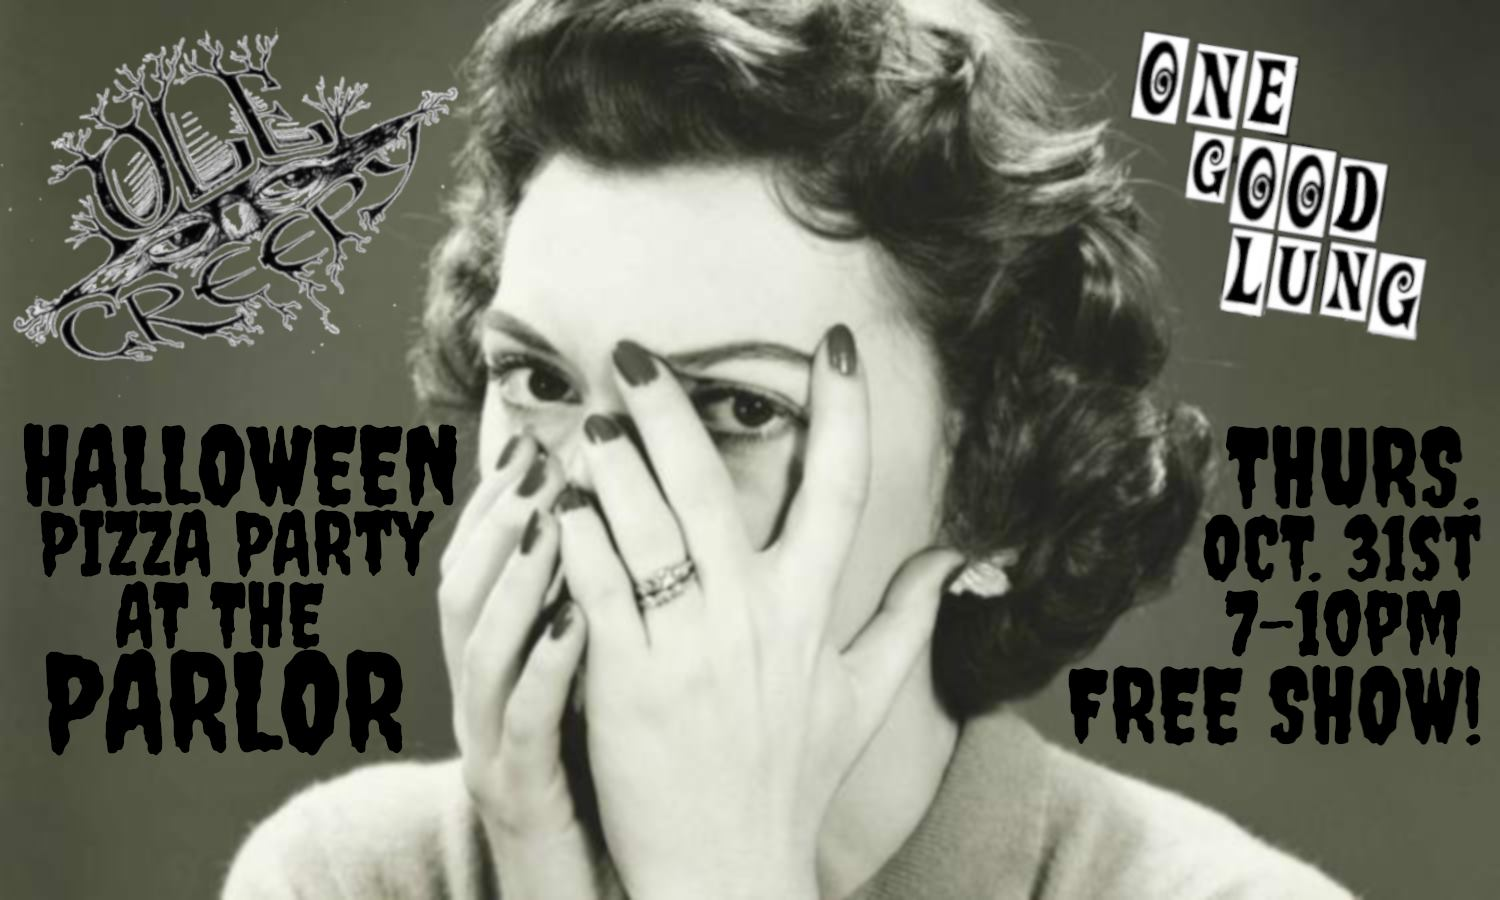 Halloween at the Parlor with onegoodlung and Ole Creepy